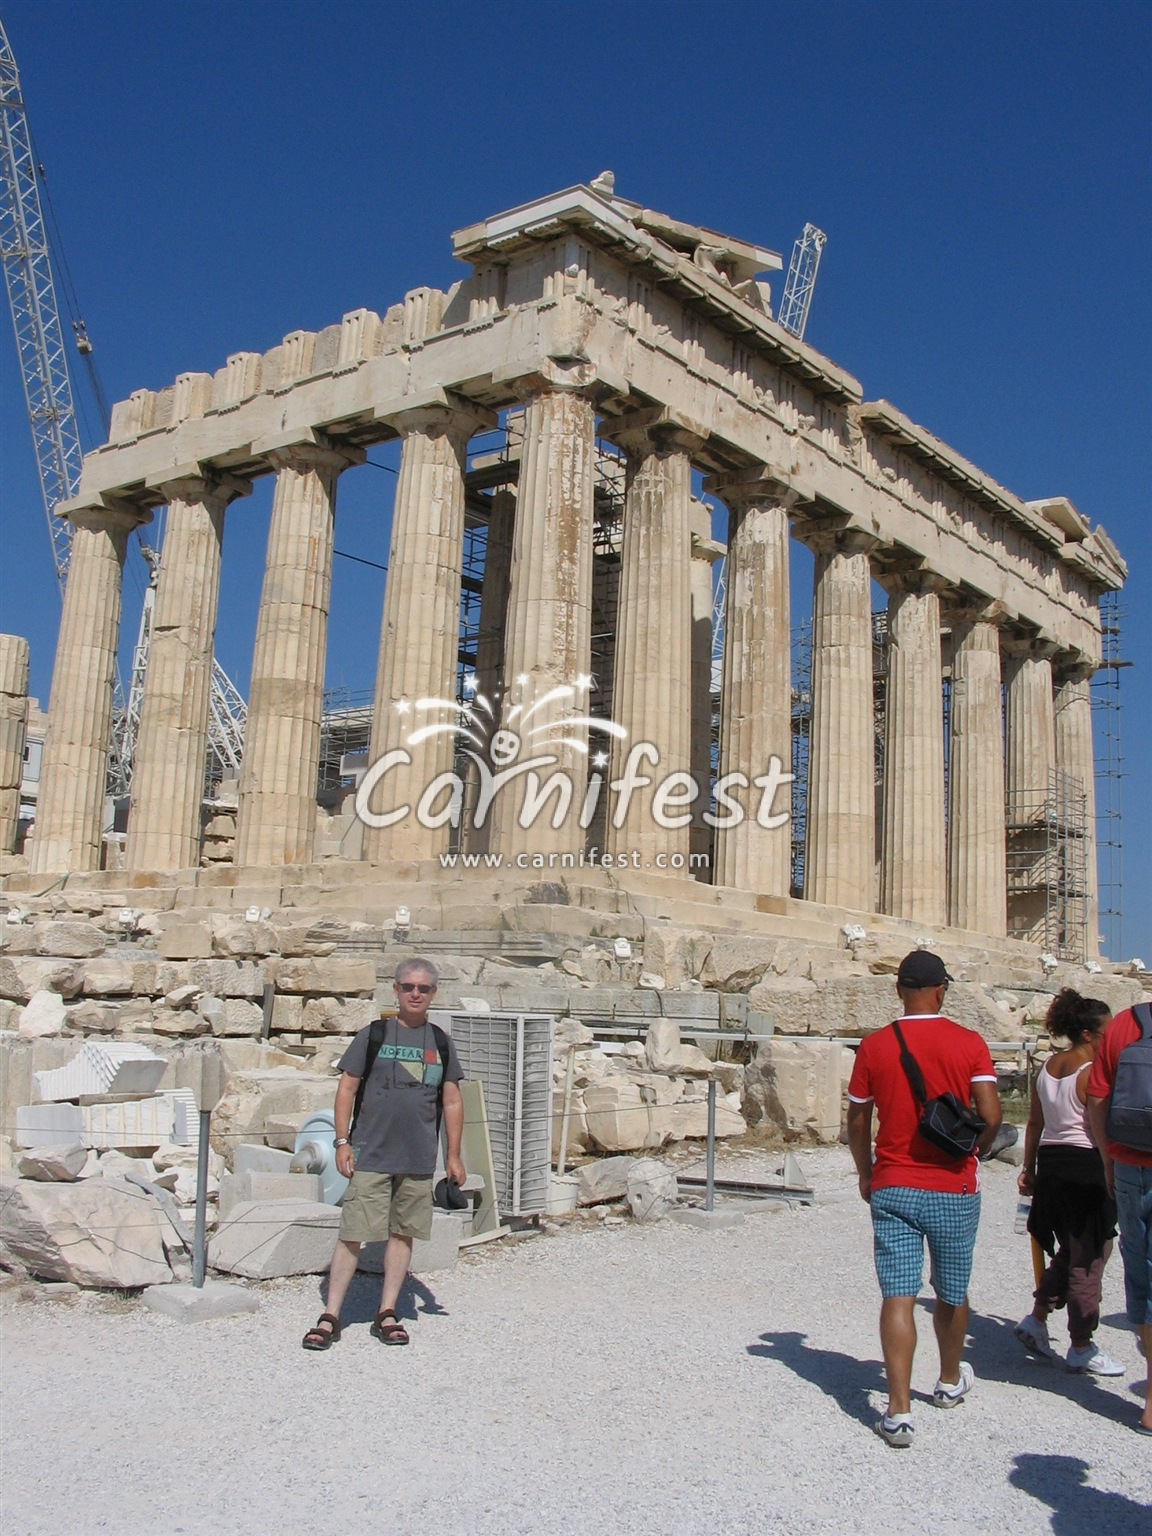 Greece, Athens, Acropolis - CarniFest Online © All Rights Reserved